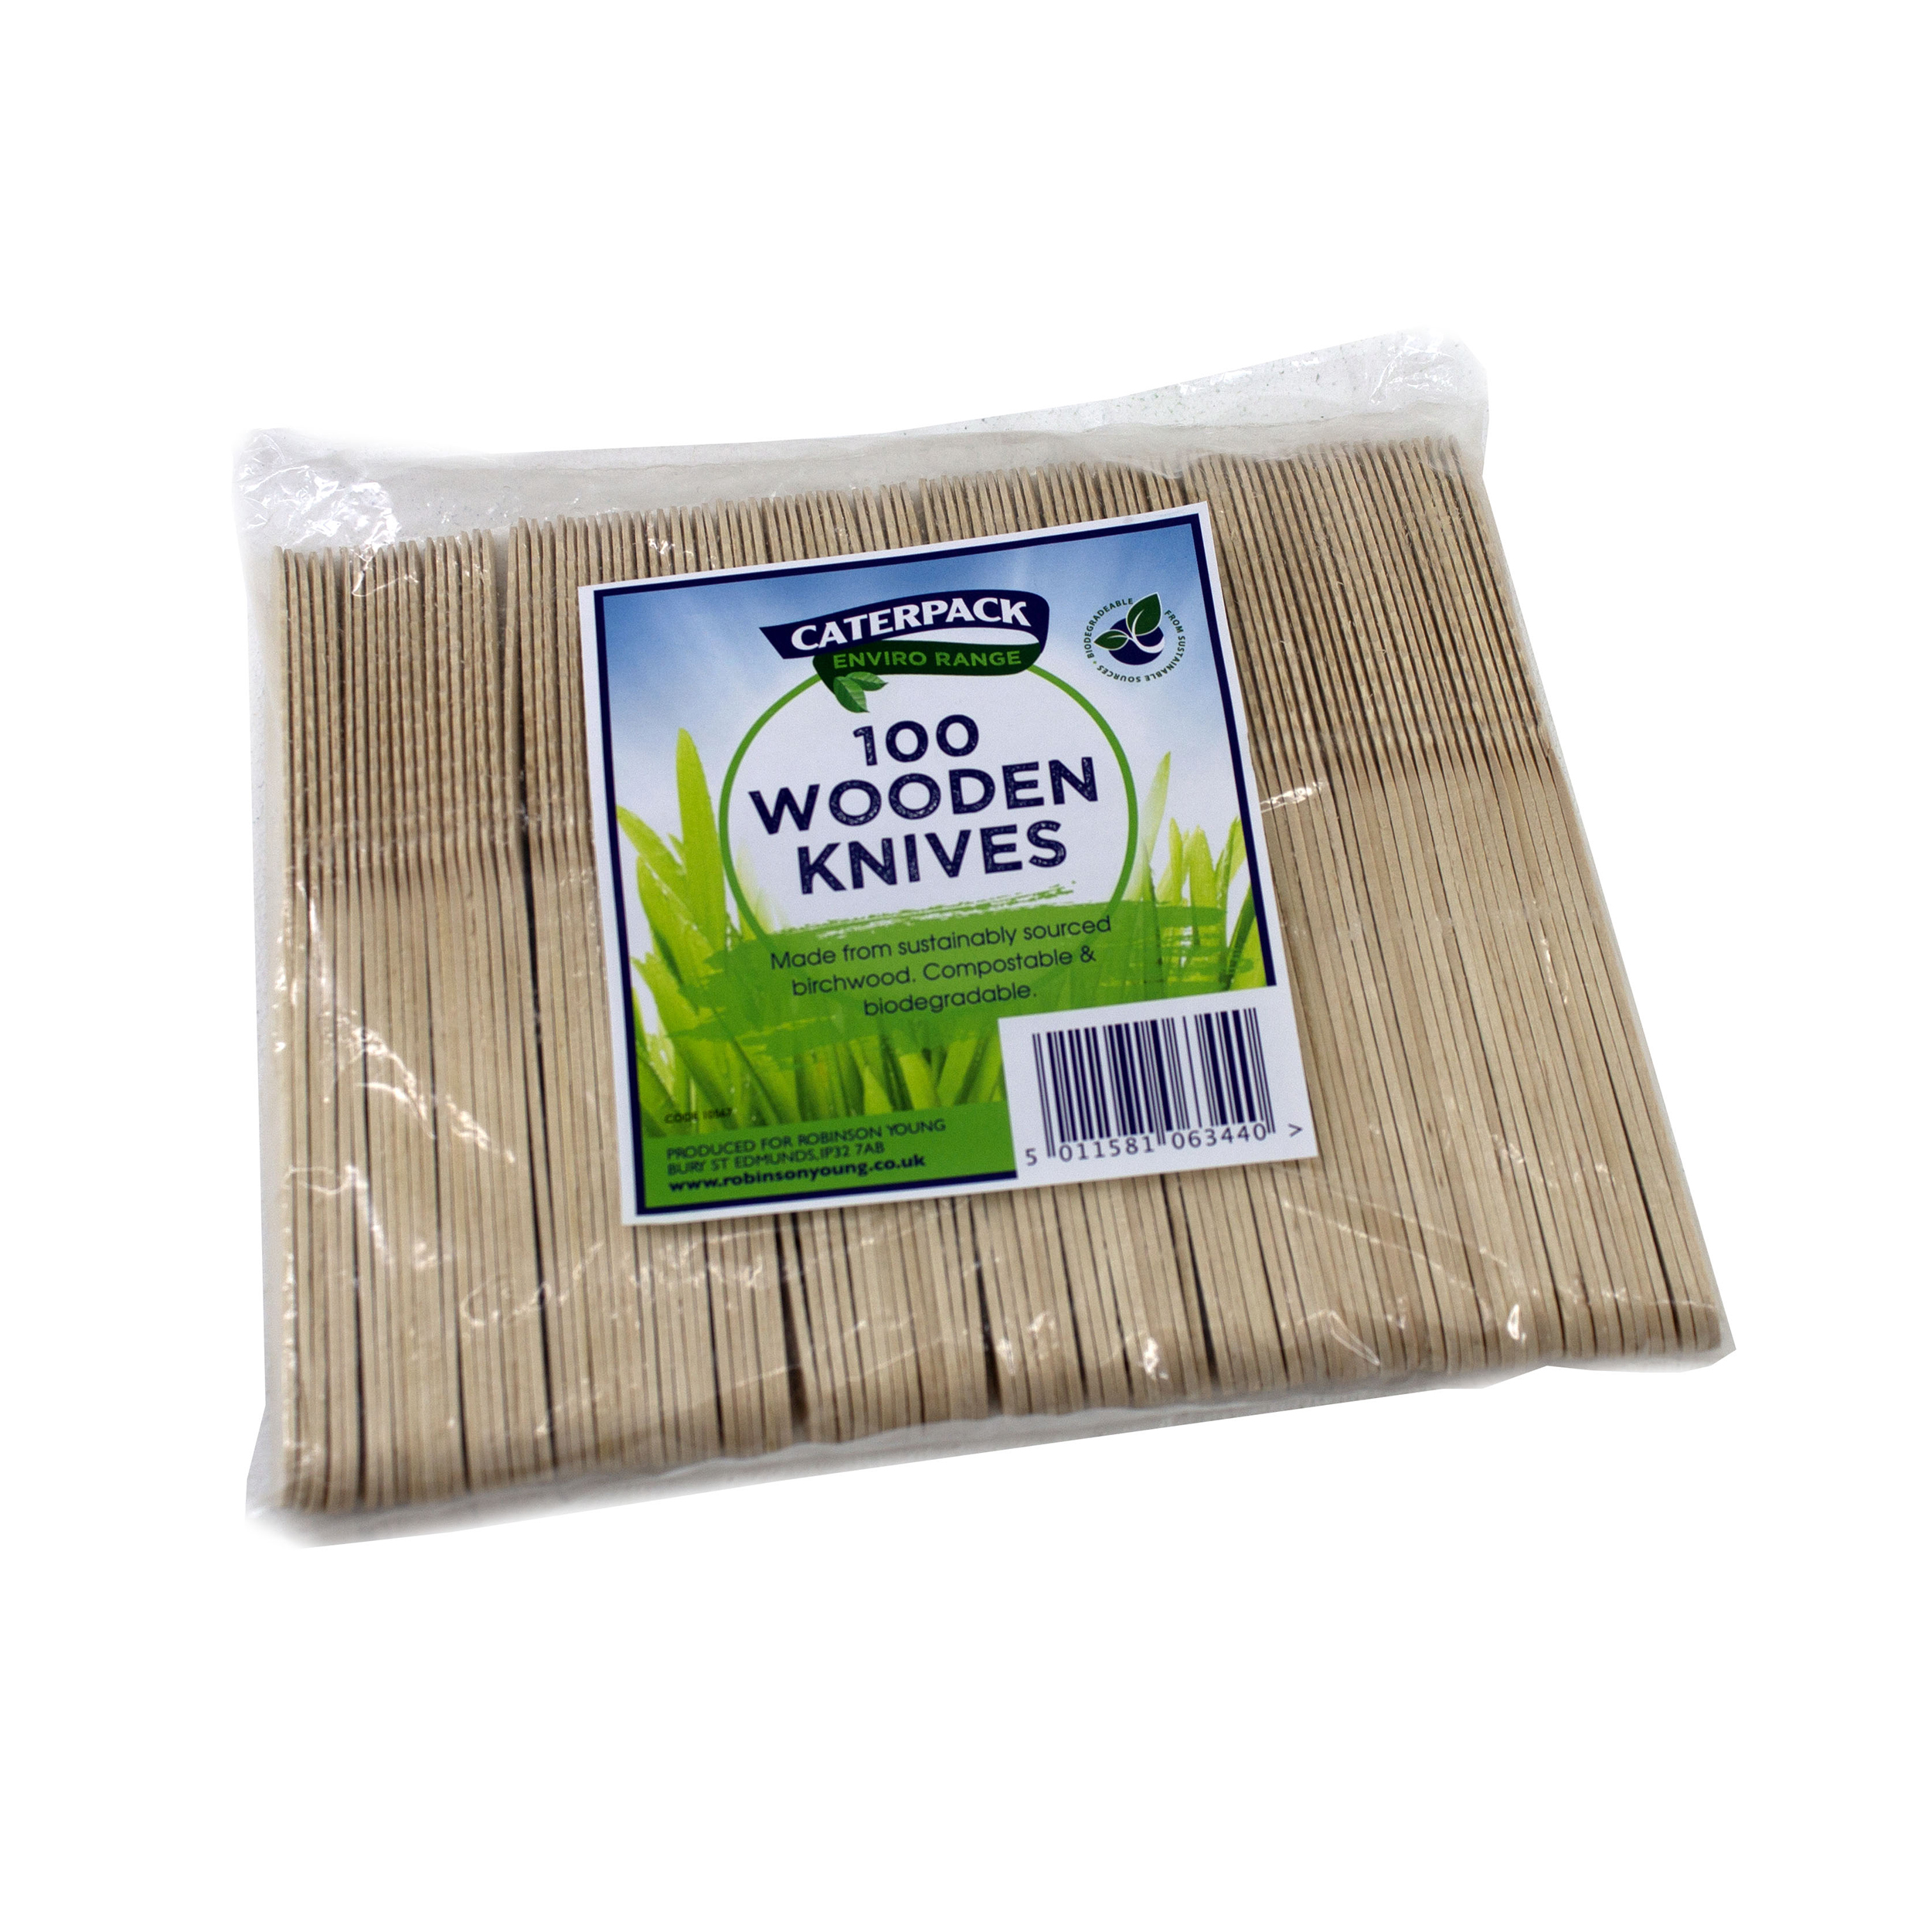 Cutlery Natural Birchwood Biodegradable Knife Pack 100